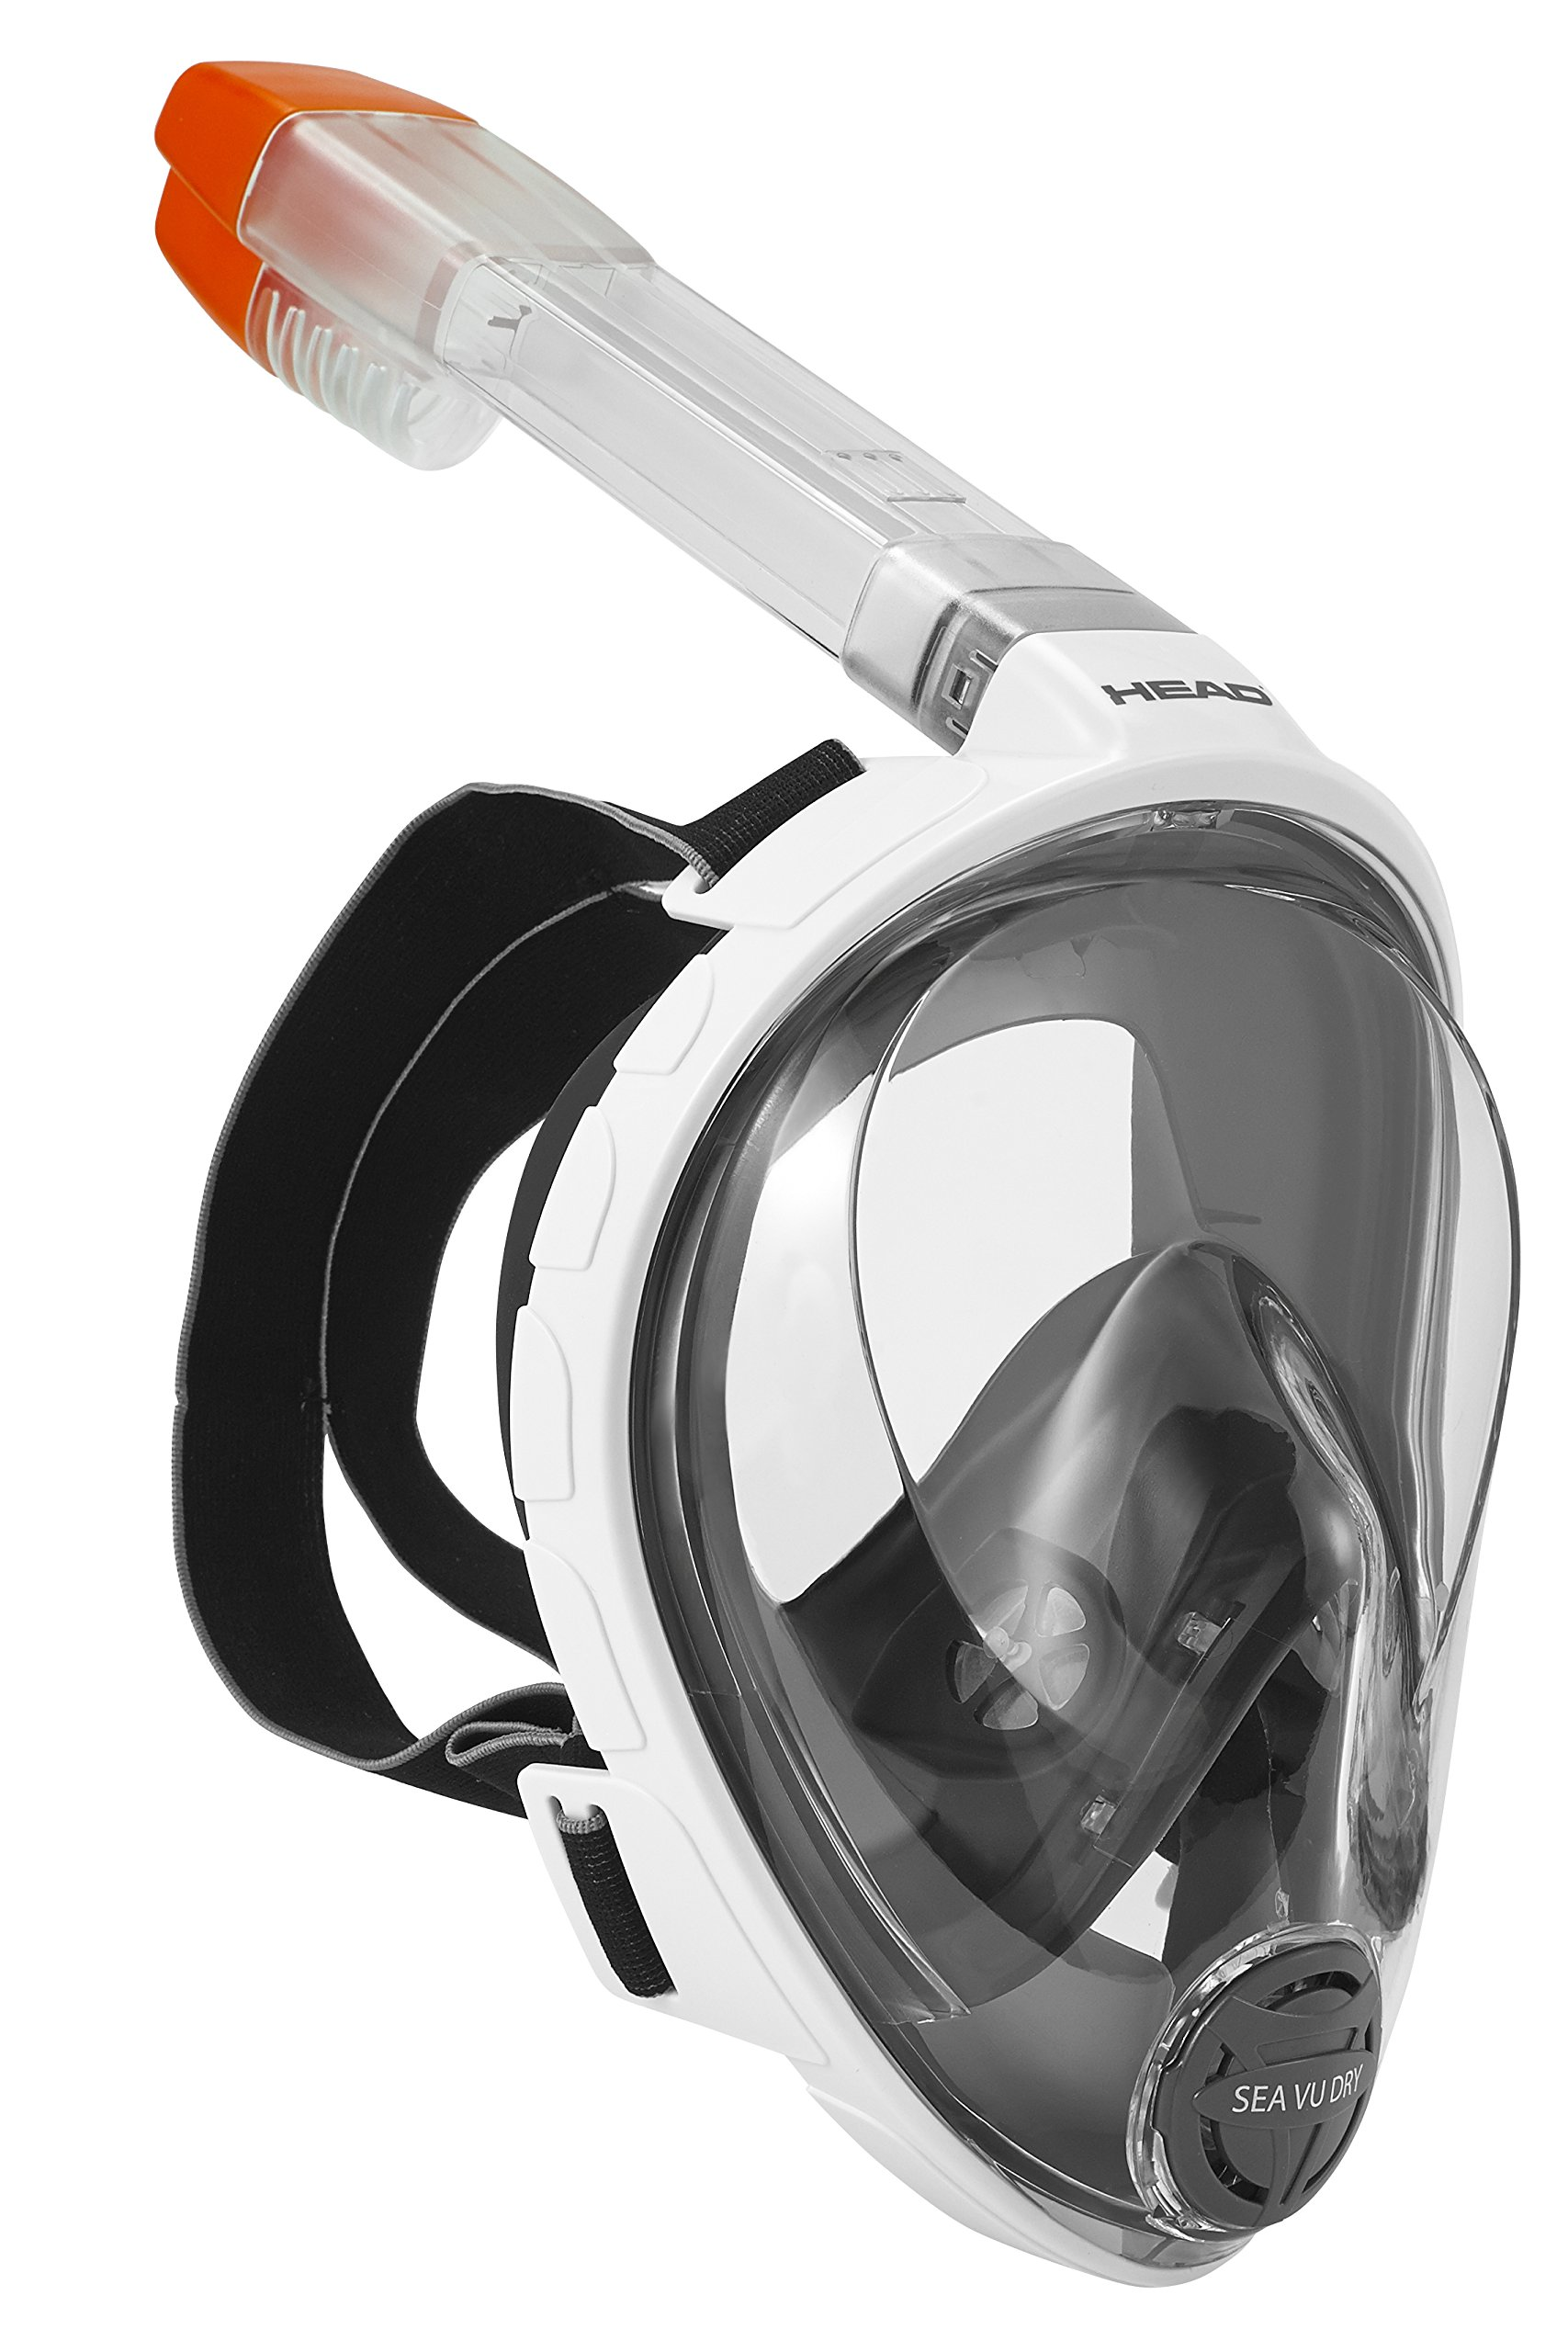 HEAD Sea VU Dry Full Face Snorkeling Mask, Large/X-Large by HEAD